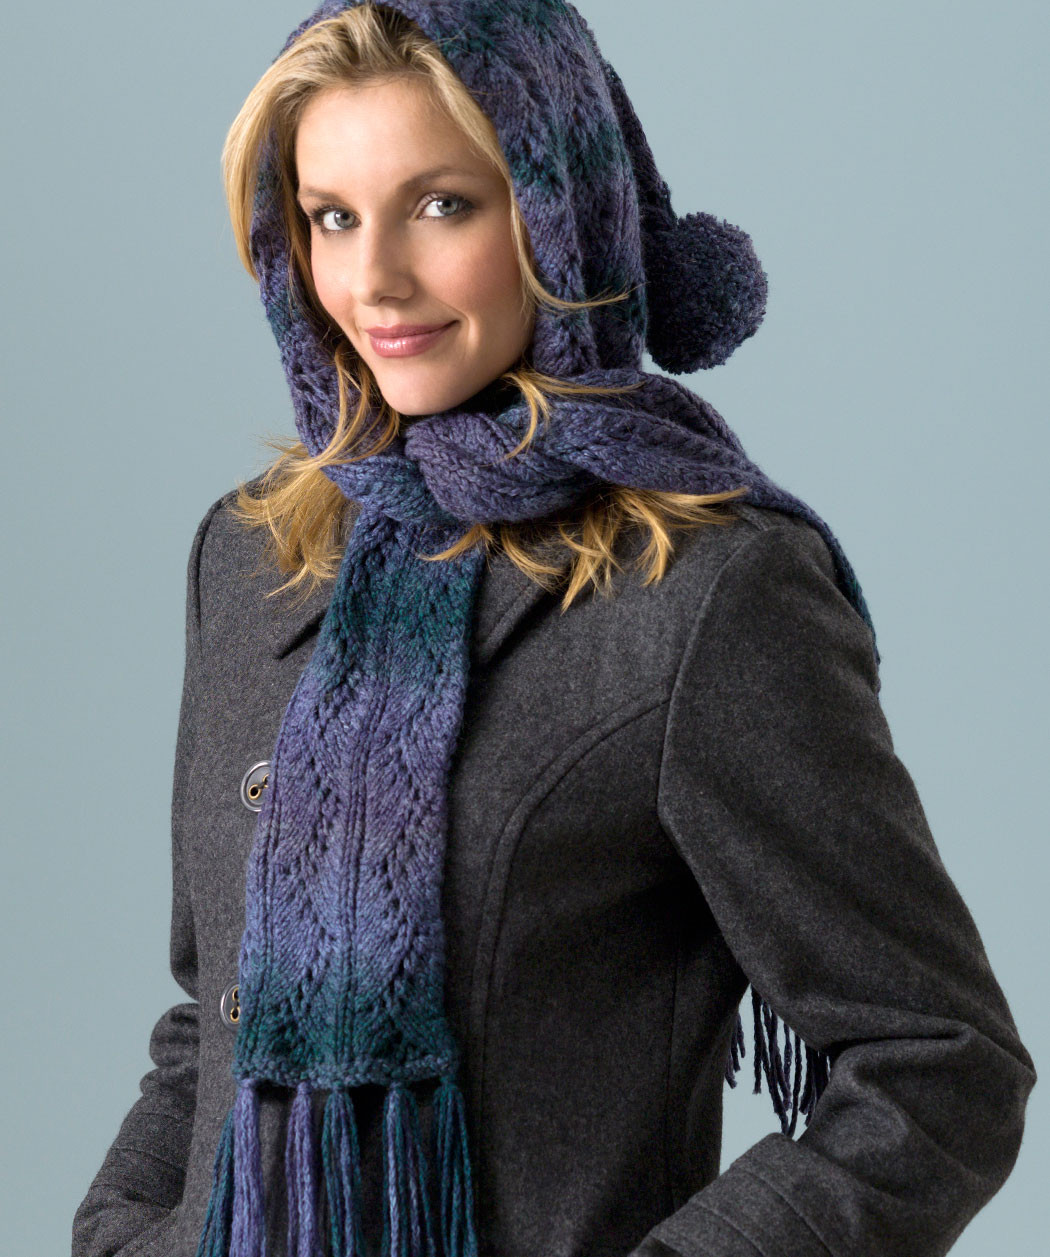 Beautiful Hooded Scarf Knitting Pattern Hooded Scarf Knitting Pattern Of Delightful 48 Pictures Hooded Scarf Knitting Pattern